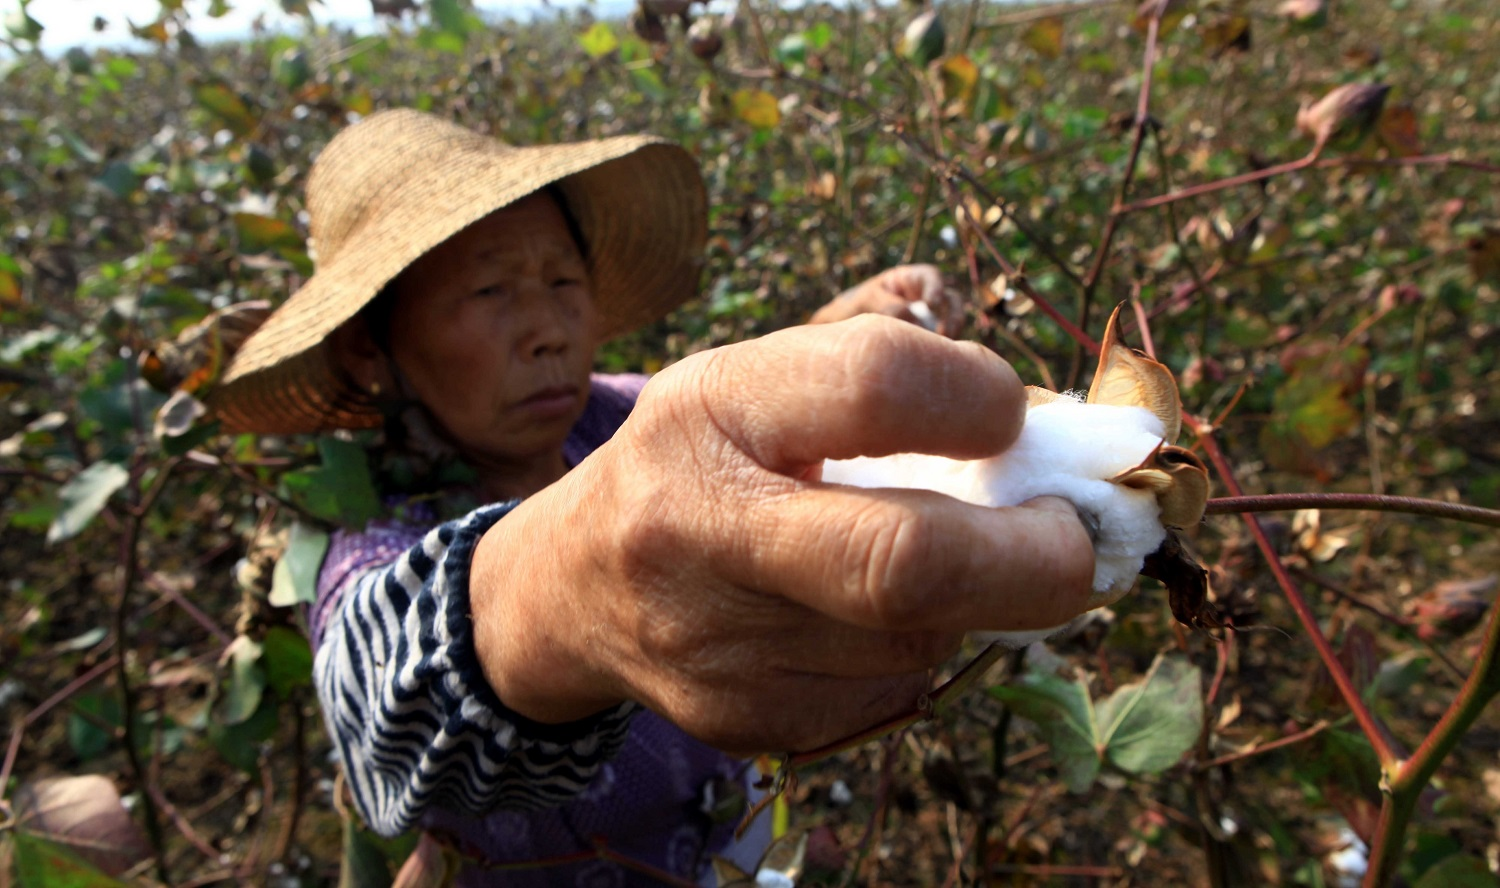 Chinese cotton picker working in field